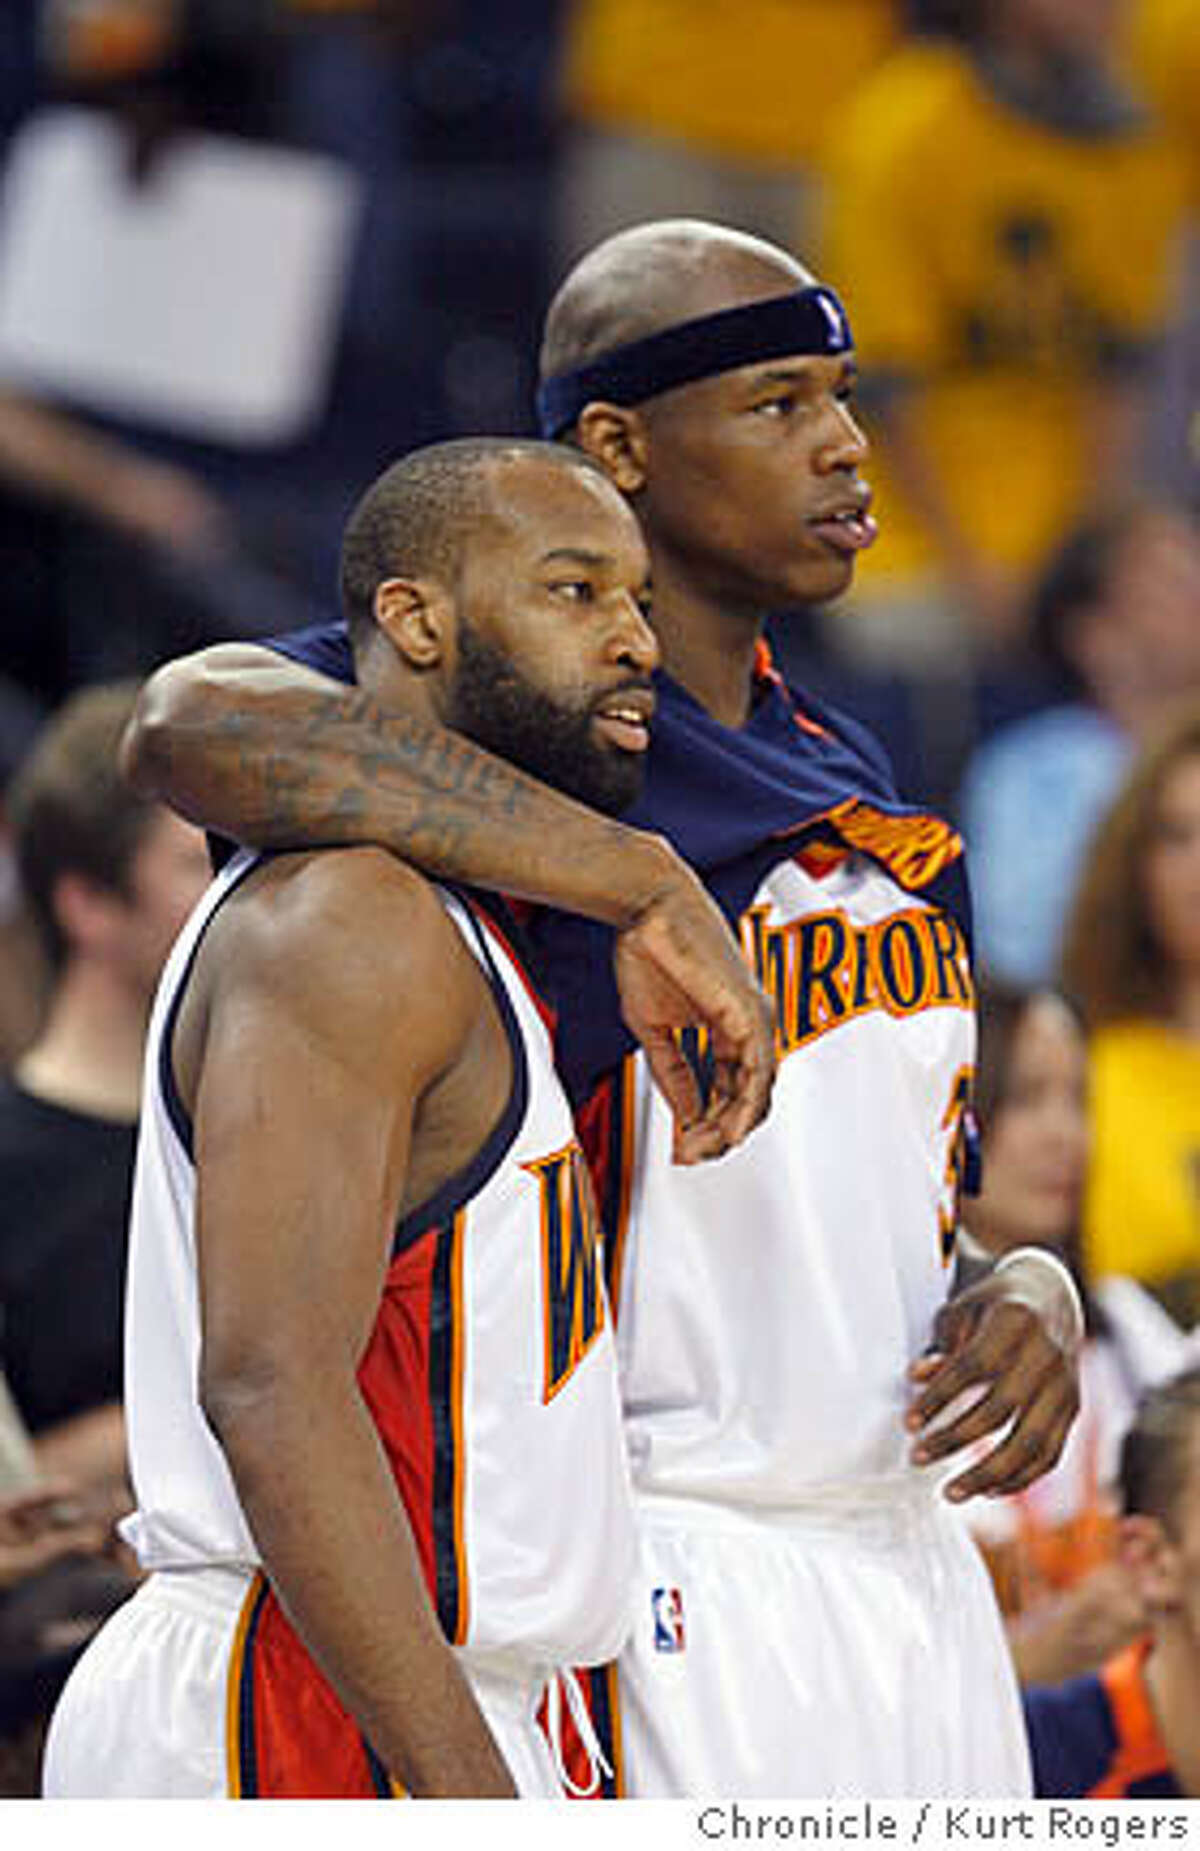 Baron Davis and Monta Ellis watch the last few seconds wind down in the 4th qiarter. The Golden State Warriors Vs Utah Jazz in game 4. SUNDAY, MAY 13, 2007 KURT ROGERS OAKLAND SFC KURT ROGERS/THE CHRONICLE WARRIORS_4rdqtr_game4_4476_kr.jpg Ran on: 05-14-2007 Baron Davis (left) and Al Harrington can only console each other during the latter stages of the Game 4 loss. Ran on: 05-14-2007 Baron Davis (left) and Al Harrington can only console each other during the latter stages of the Game 4 loss.